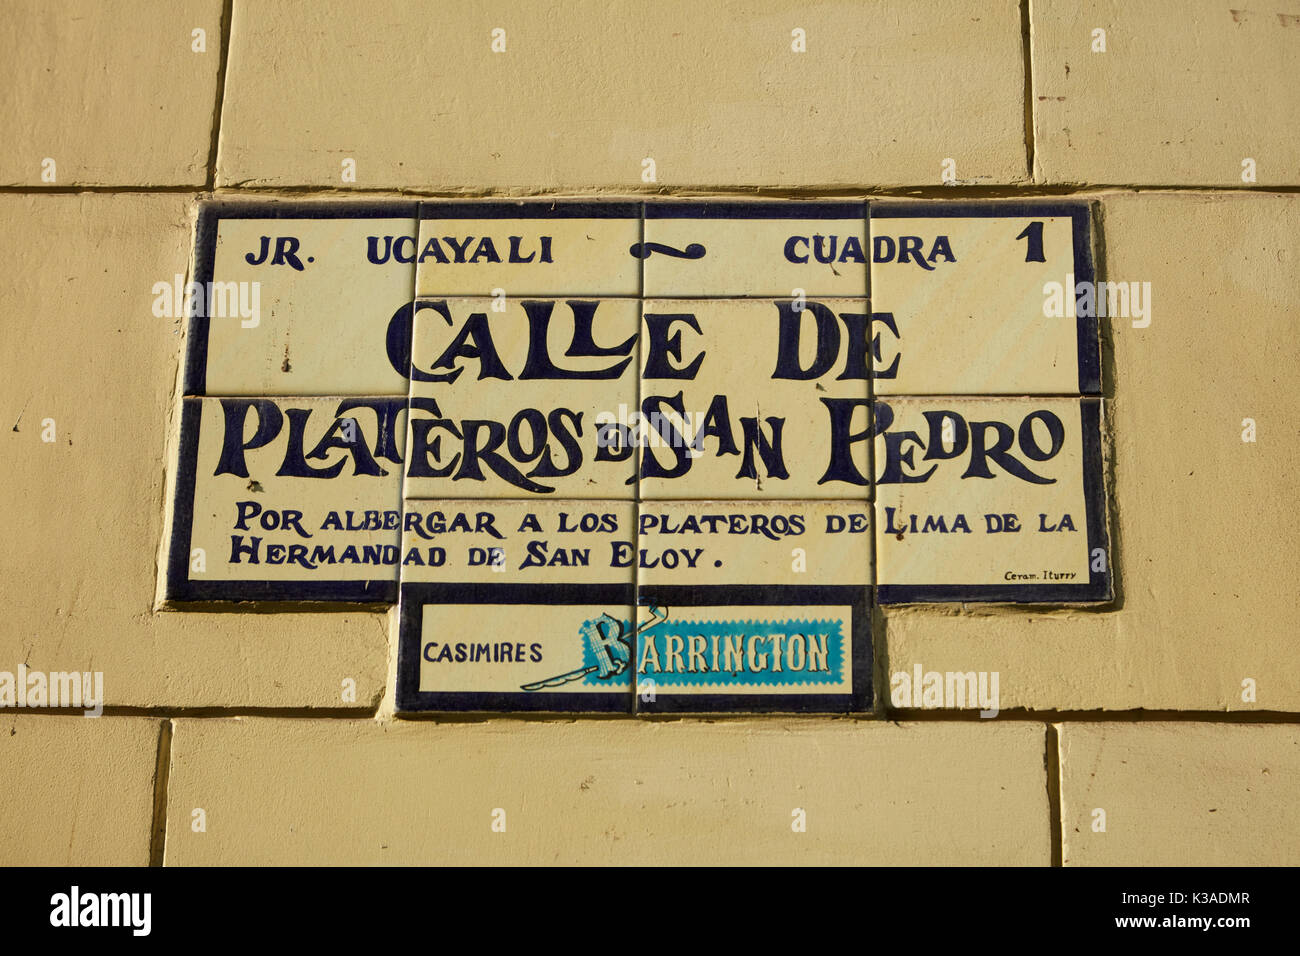 Old street sign for Calle de Plateros de San Pedro (Street of Silversmiths), Historic centre of Lima (World Heritage Site), Peru, South America - Stock Image